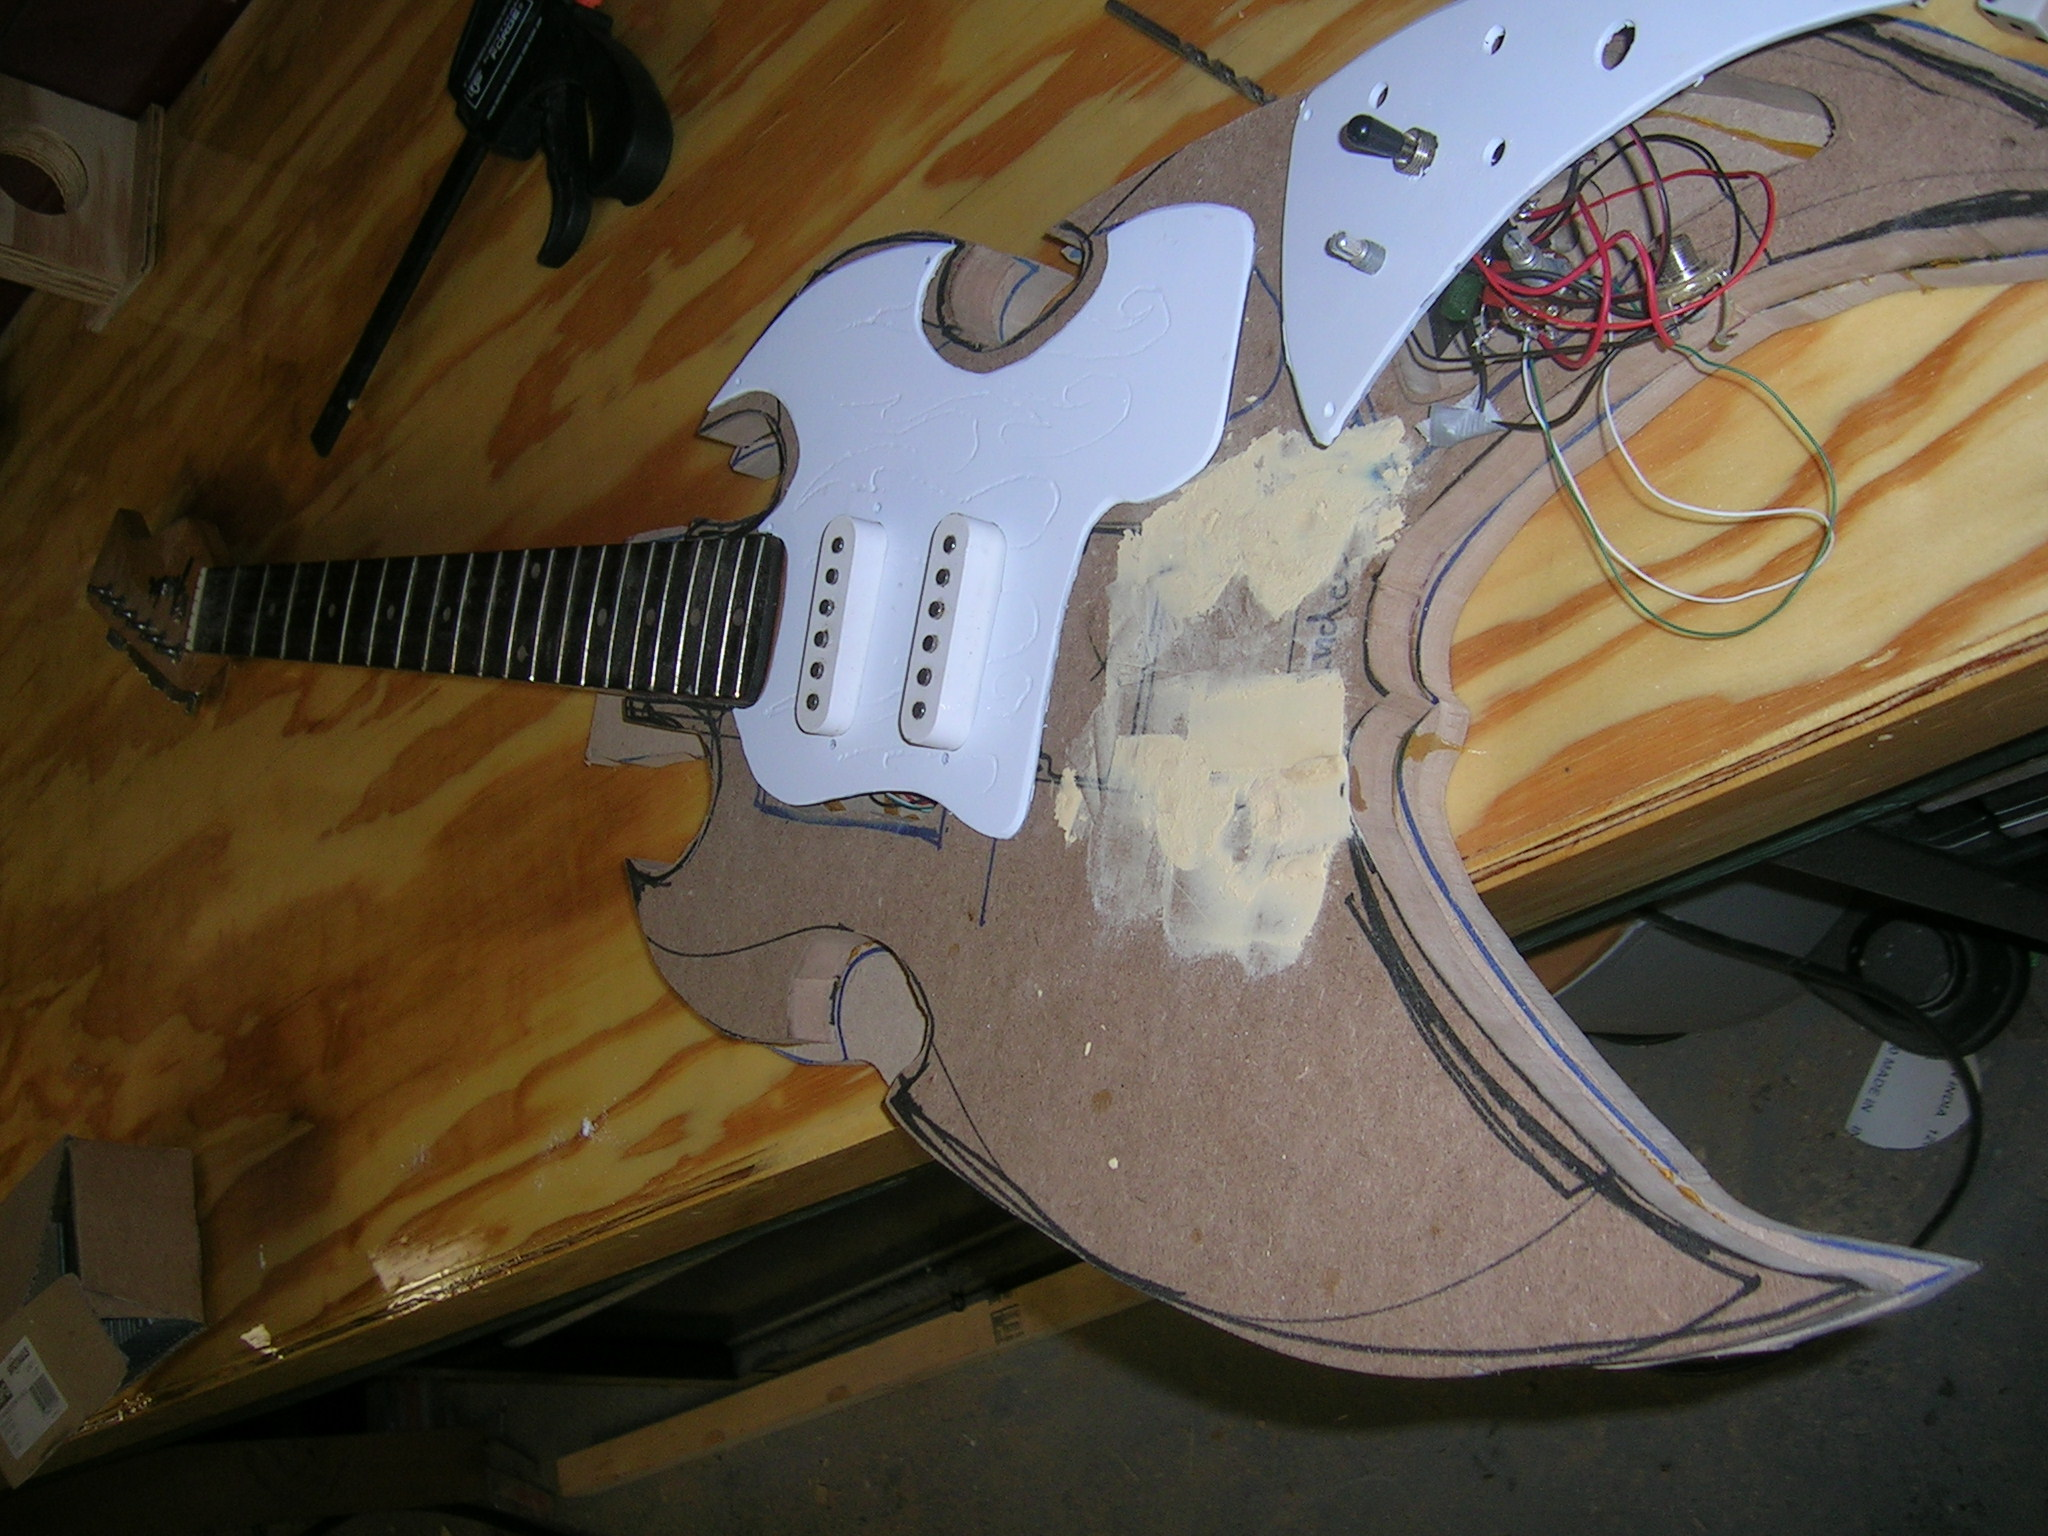 medium resolution of new look at an old wiring schemeand another cheap guitar makeover build a custom electric guitar